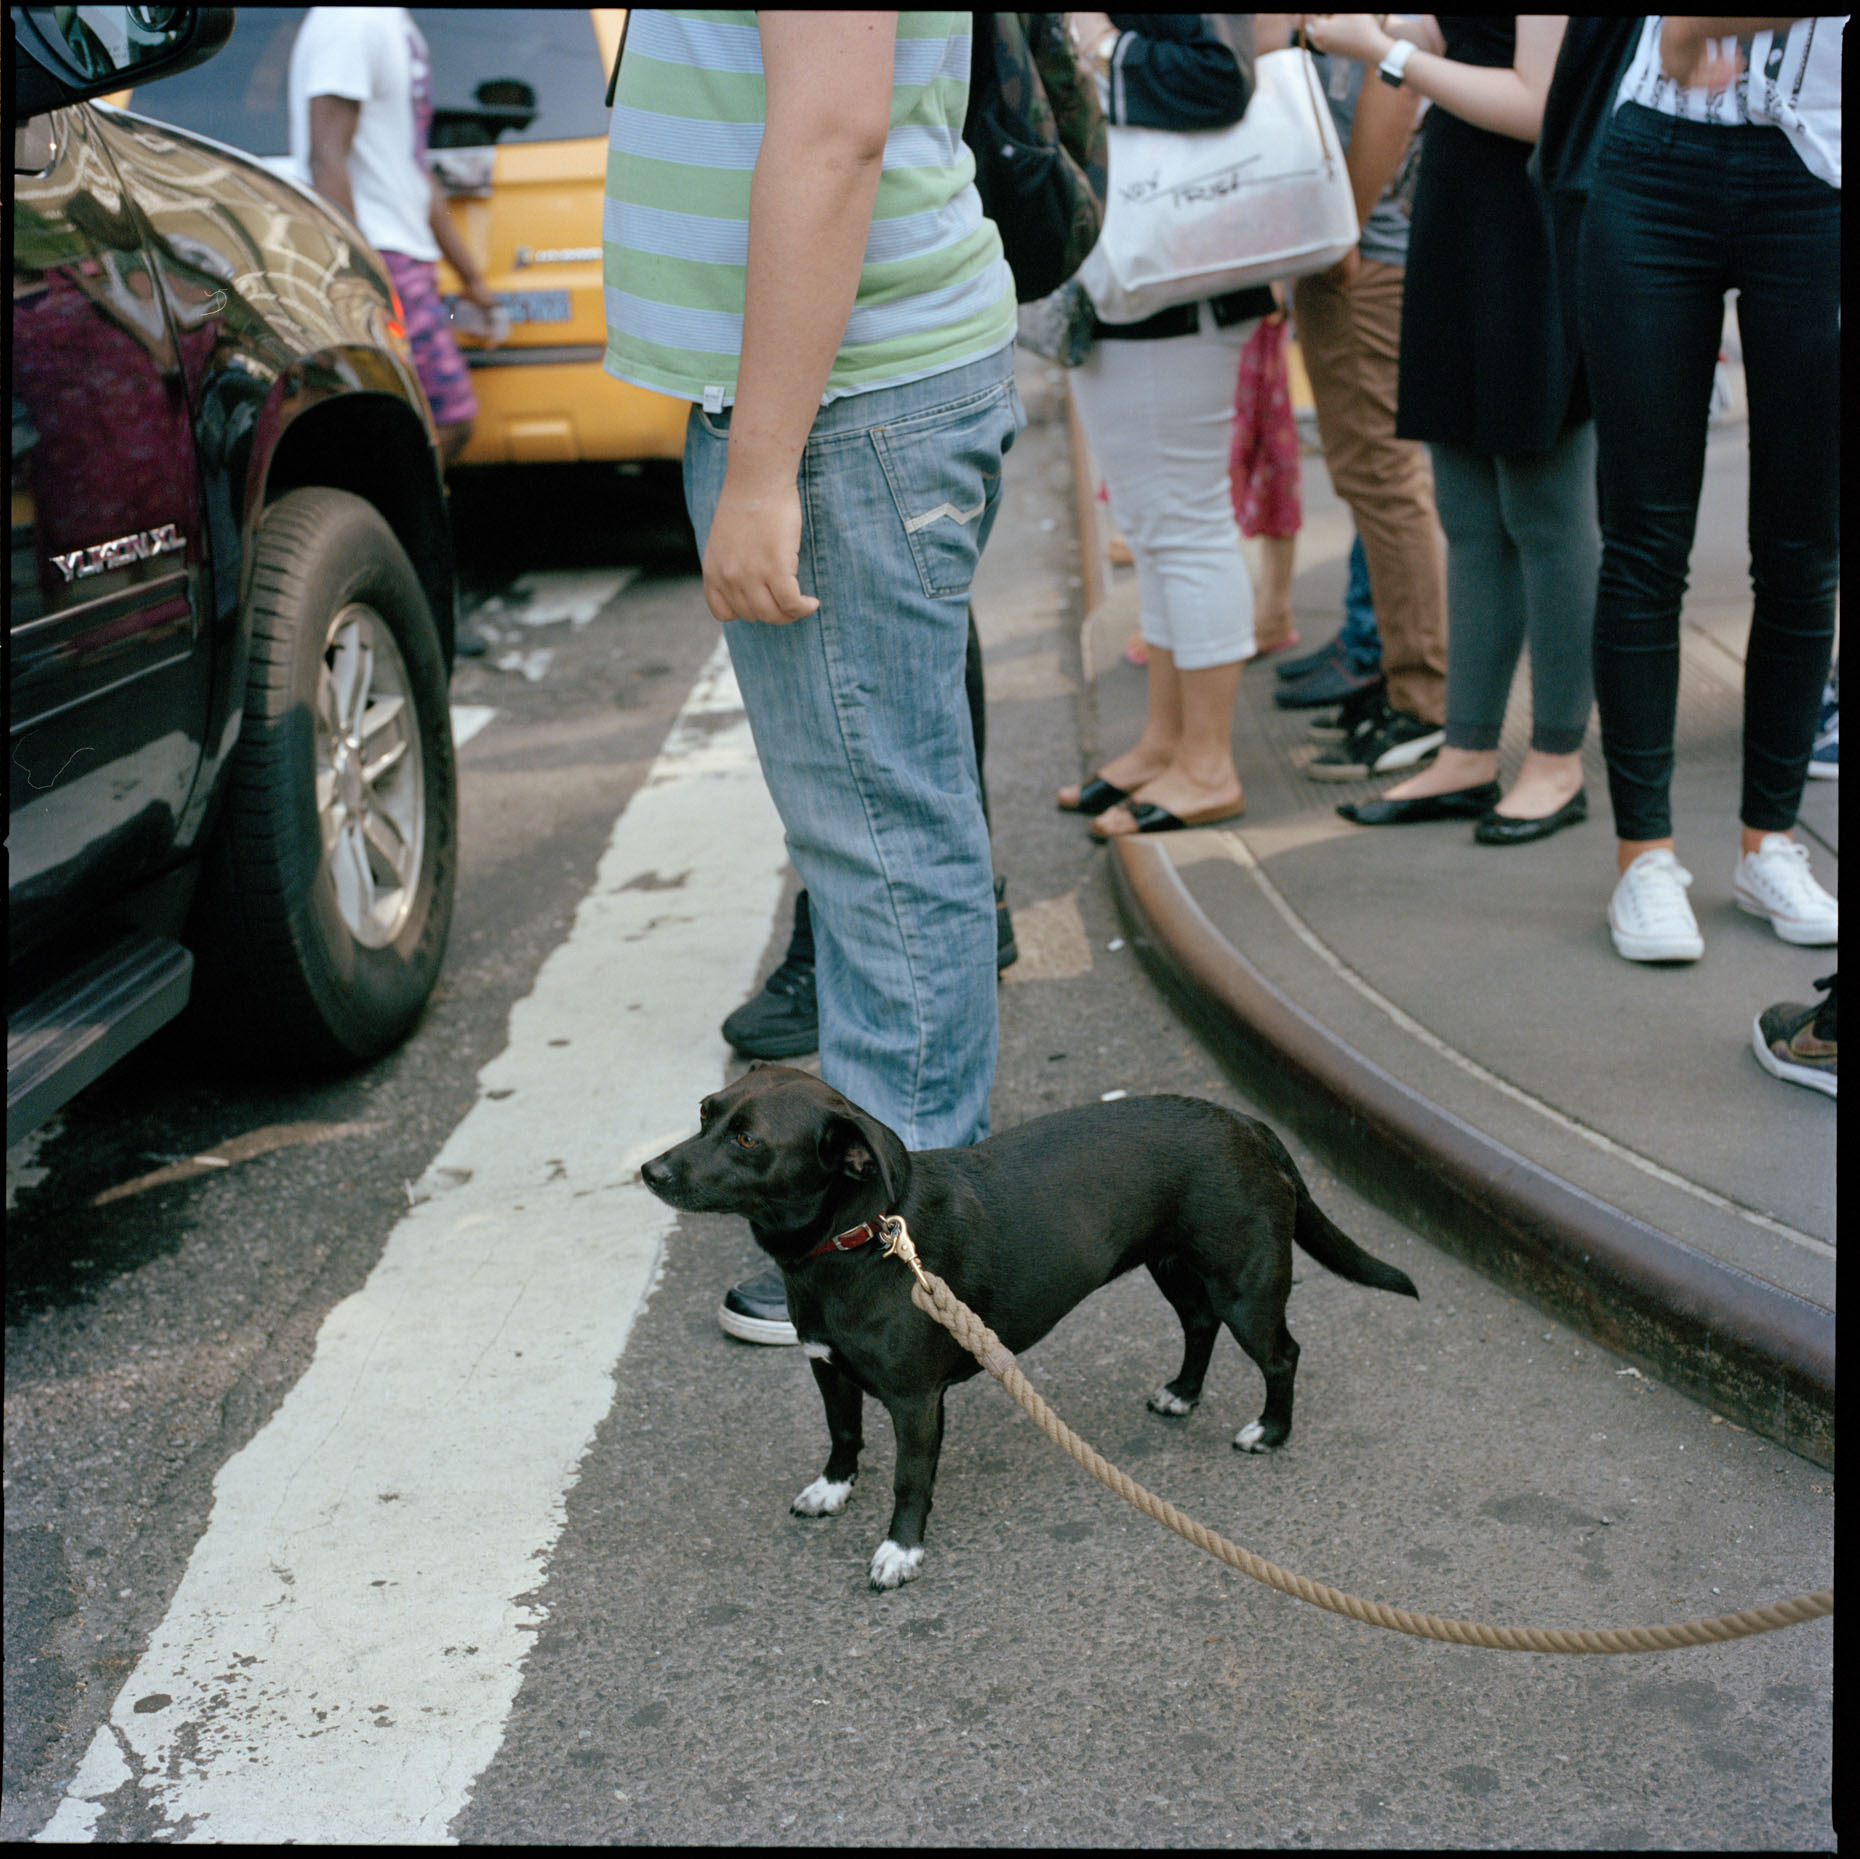 A dog waits patiently at a crosswalk in Midtown Manhattan.